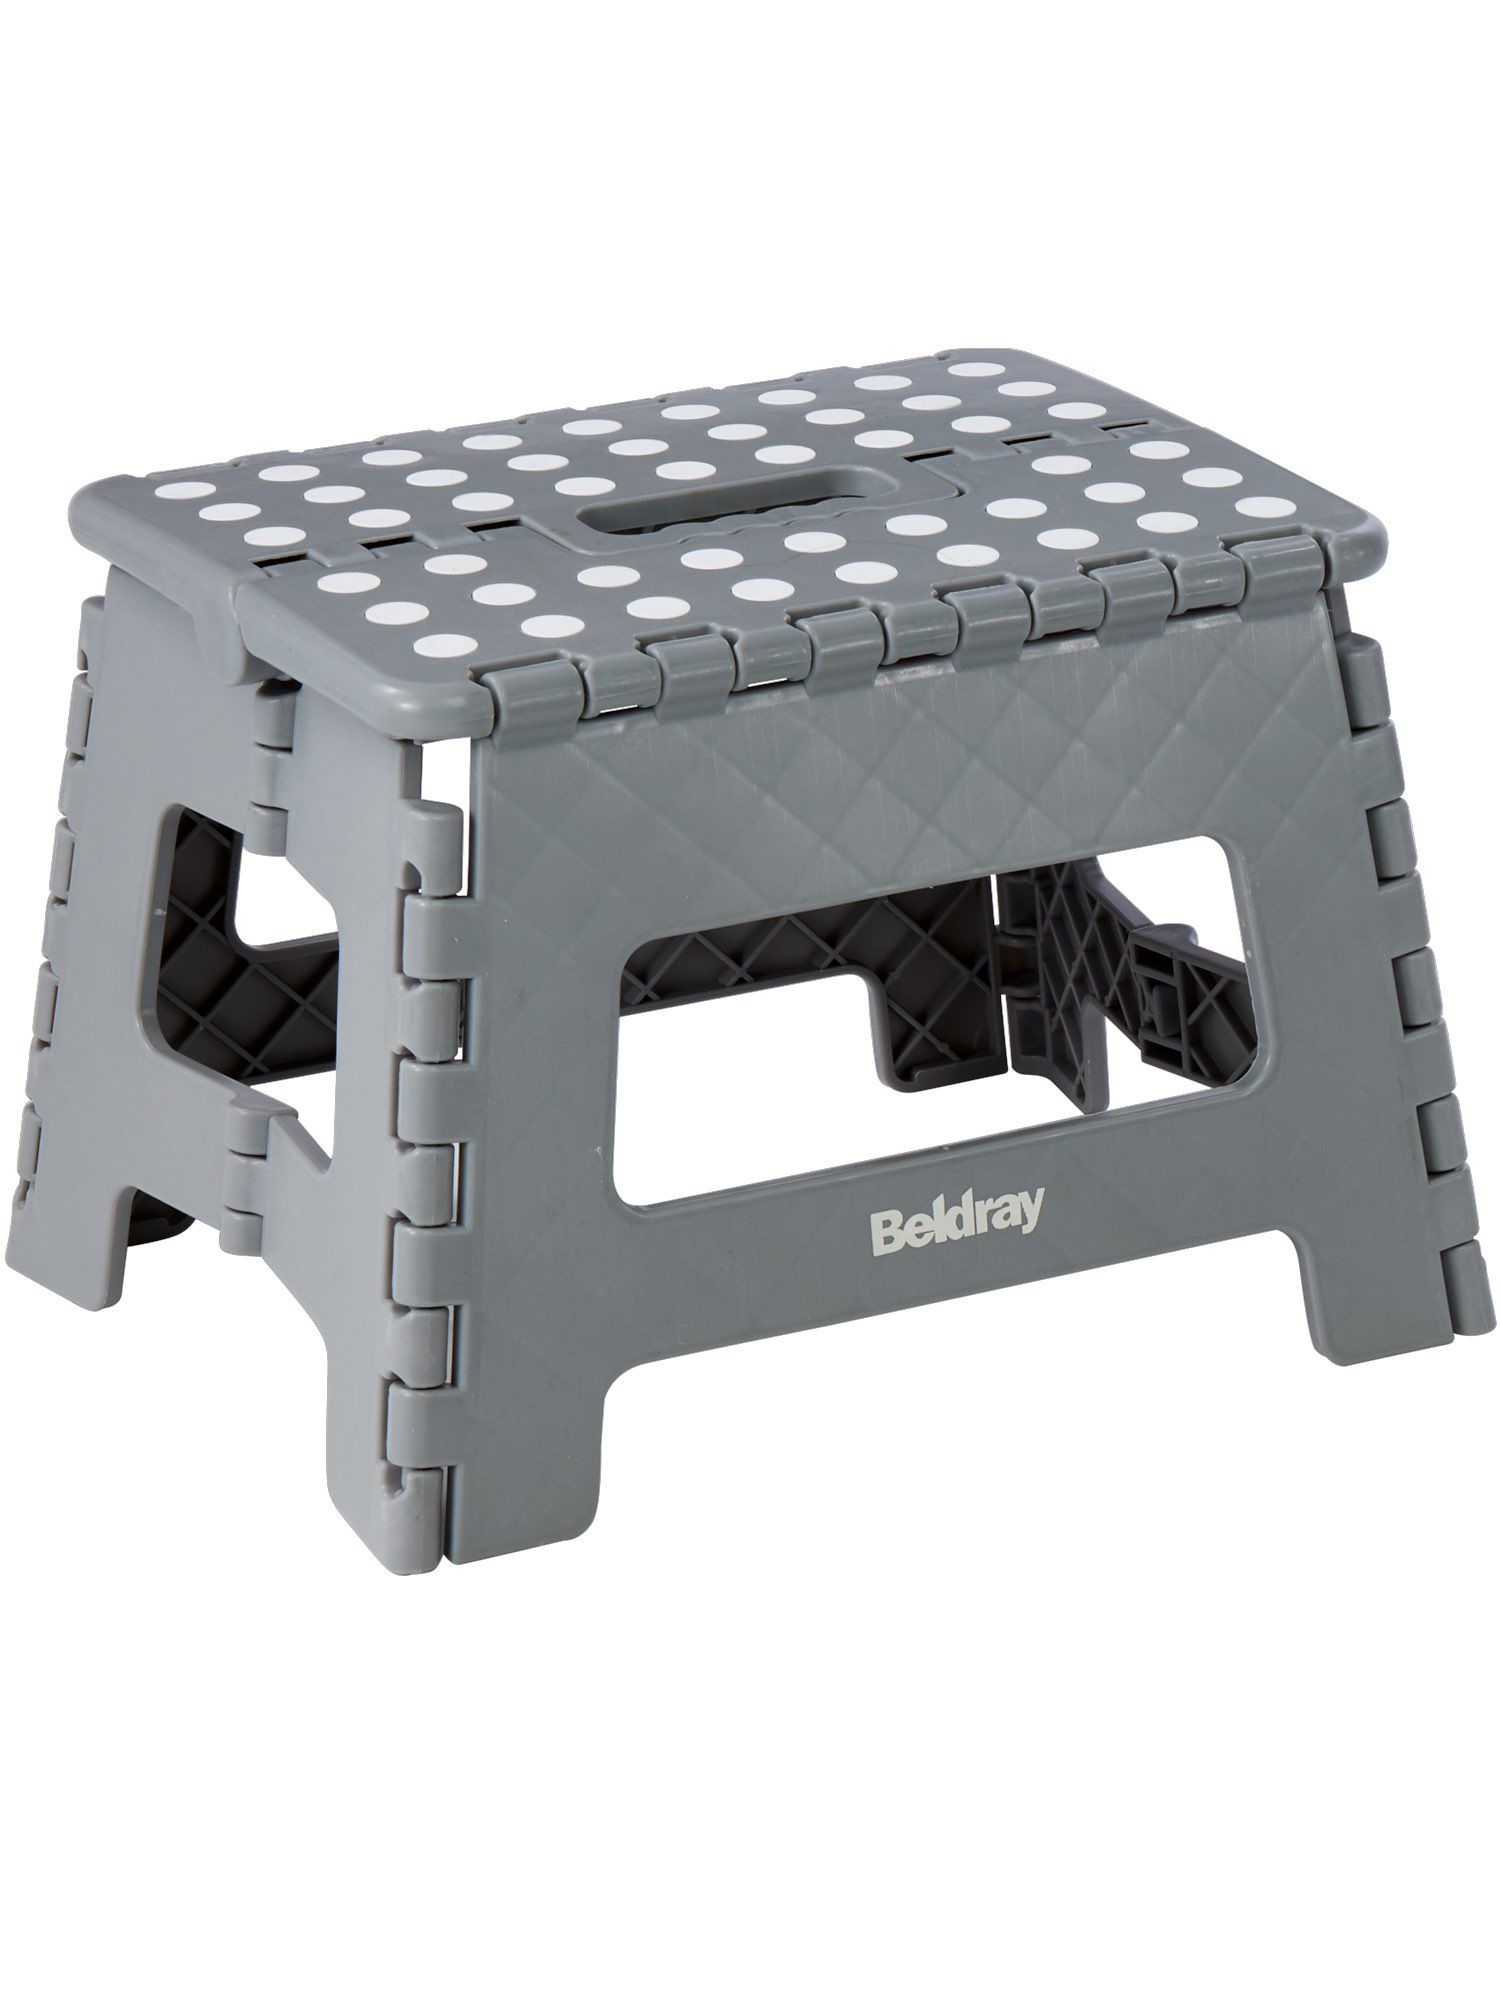 Fine Collapsible Mult Purpose9 Folding Step Stool Ocoug Best Dining Table And Chair Ideas Images Ocougorg